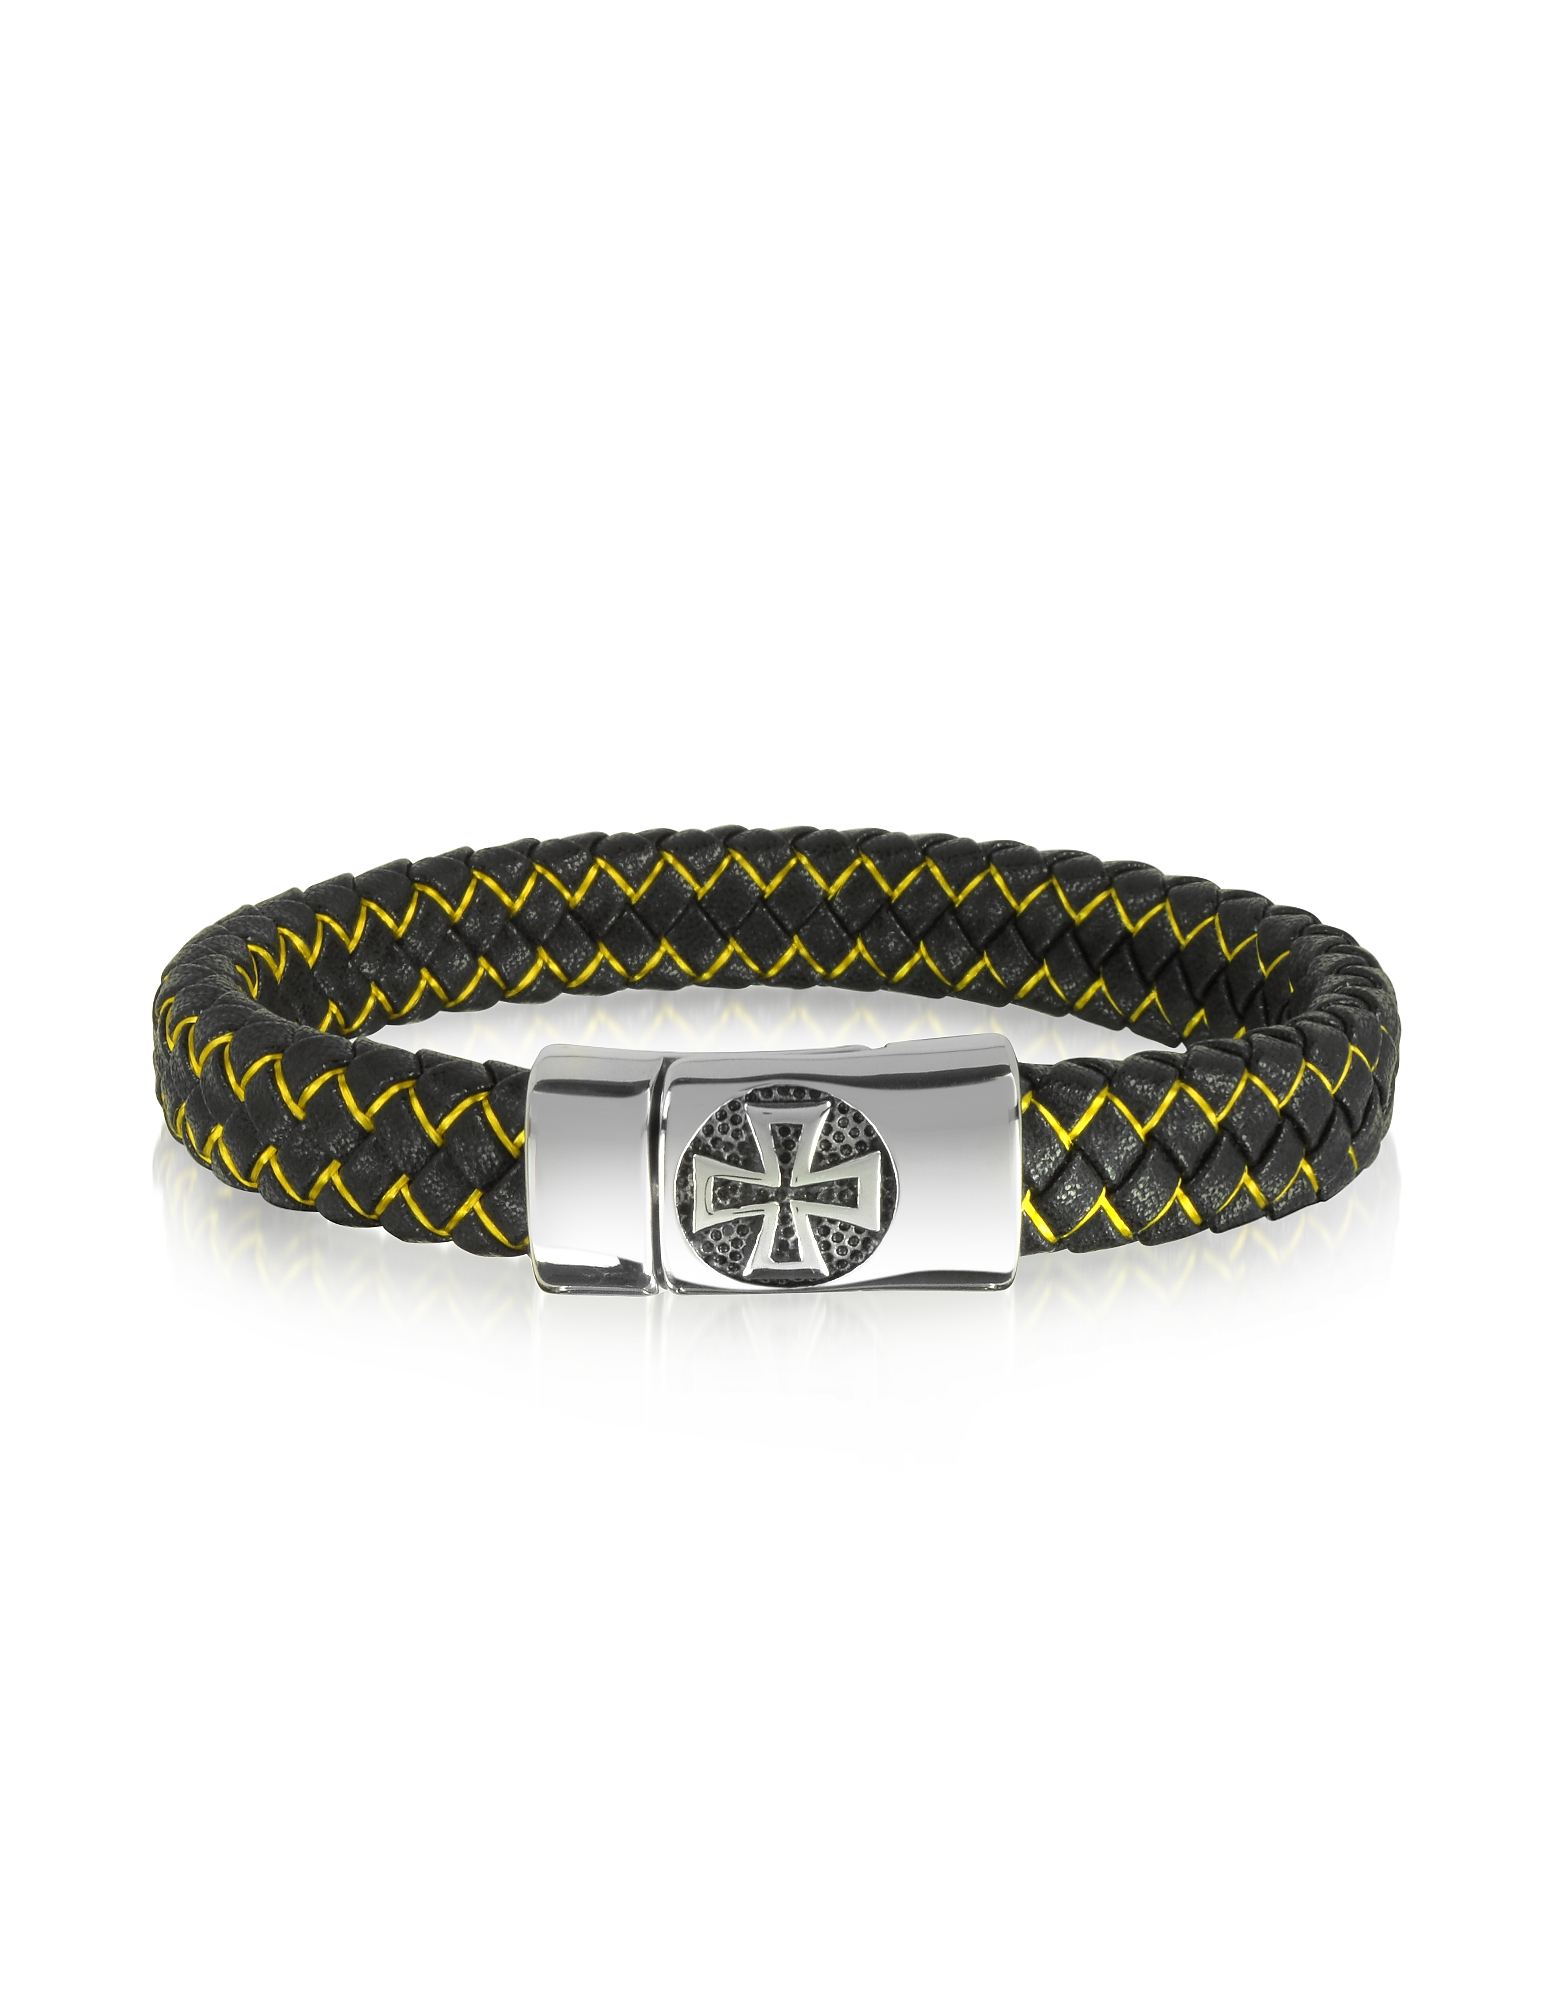 Image of Blackbourne Designer Men's Bracelets, Black Woven Leather and Stainless Steel Celtic Cross Men's Bracelet